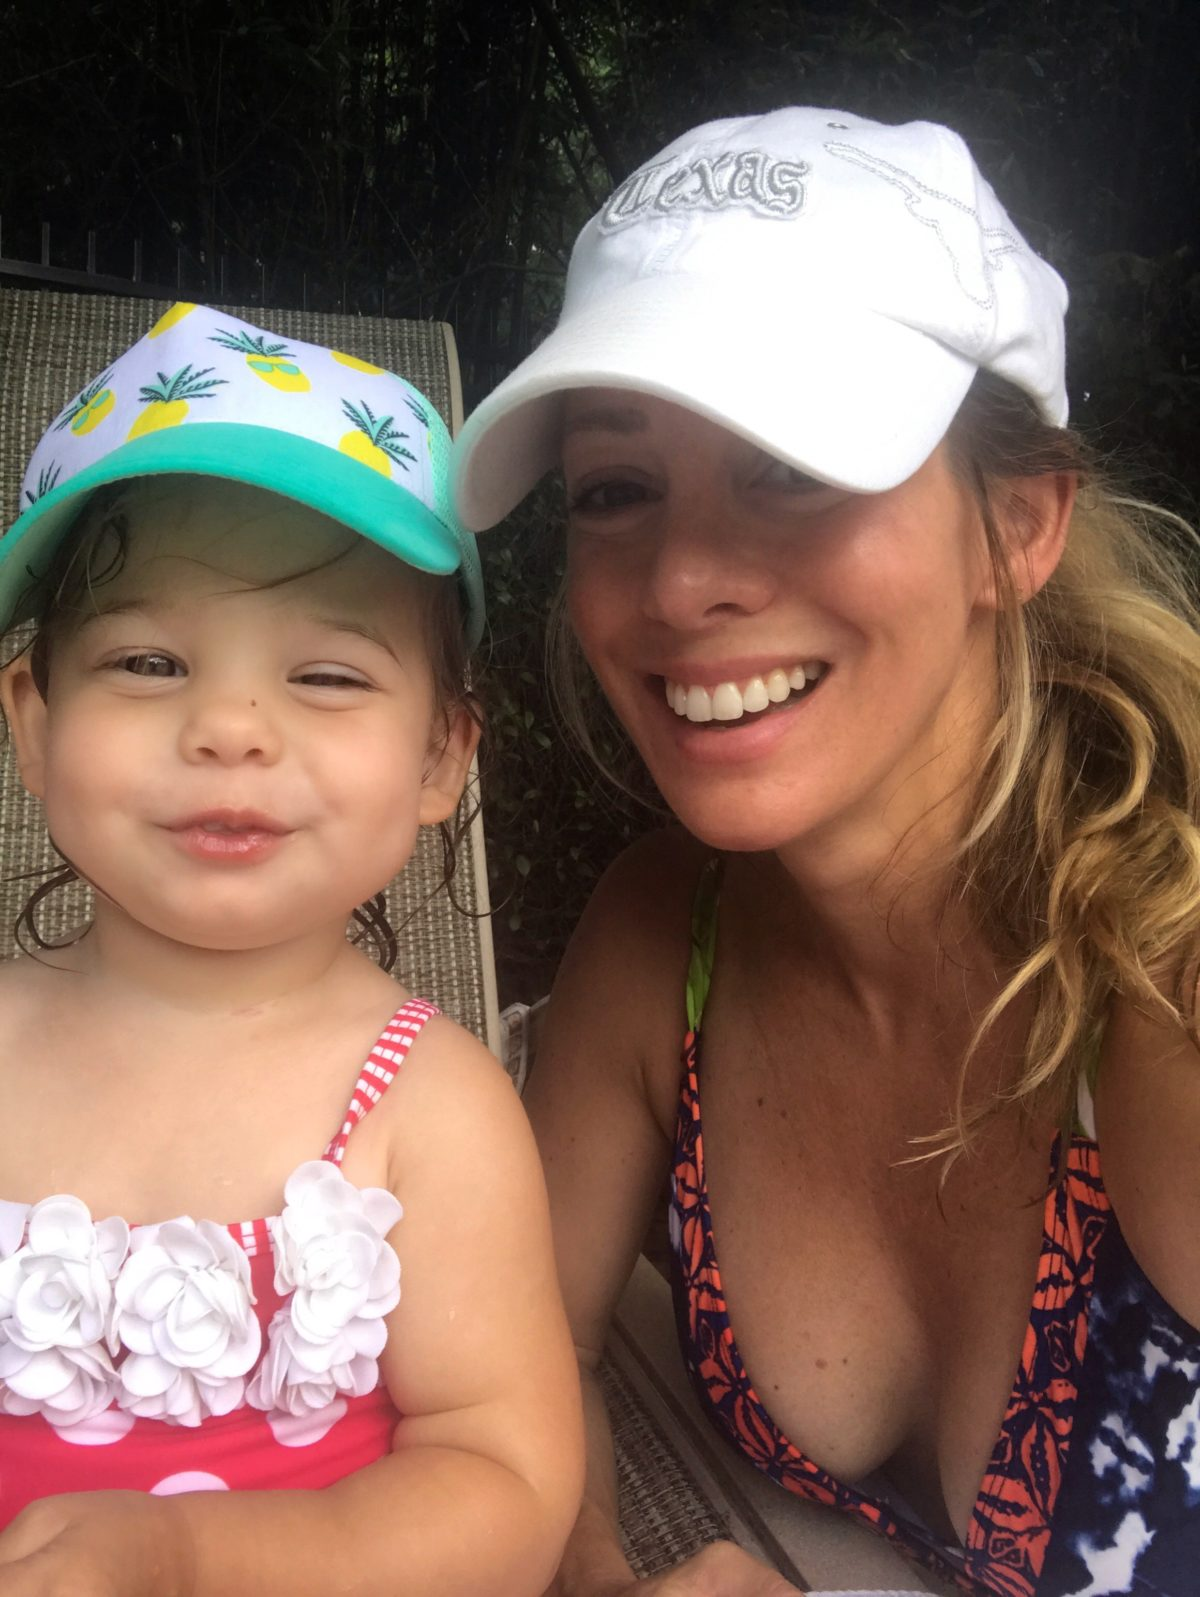 baby swimsuit and hat